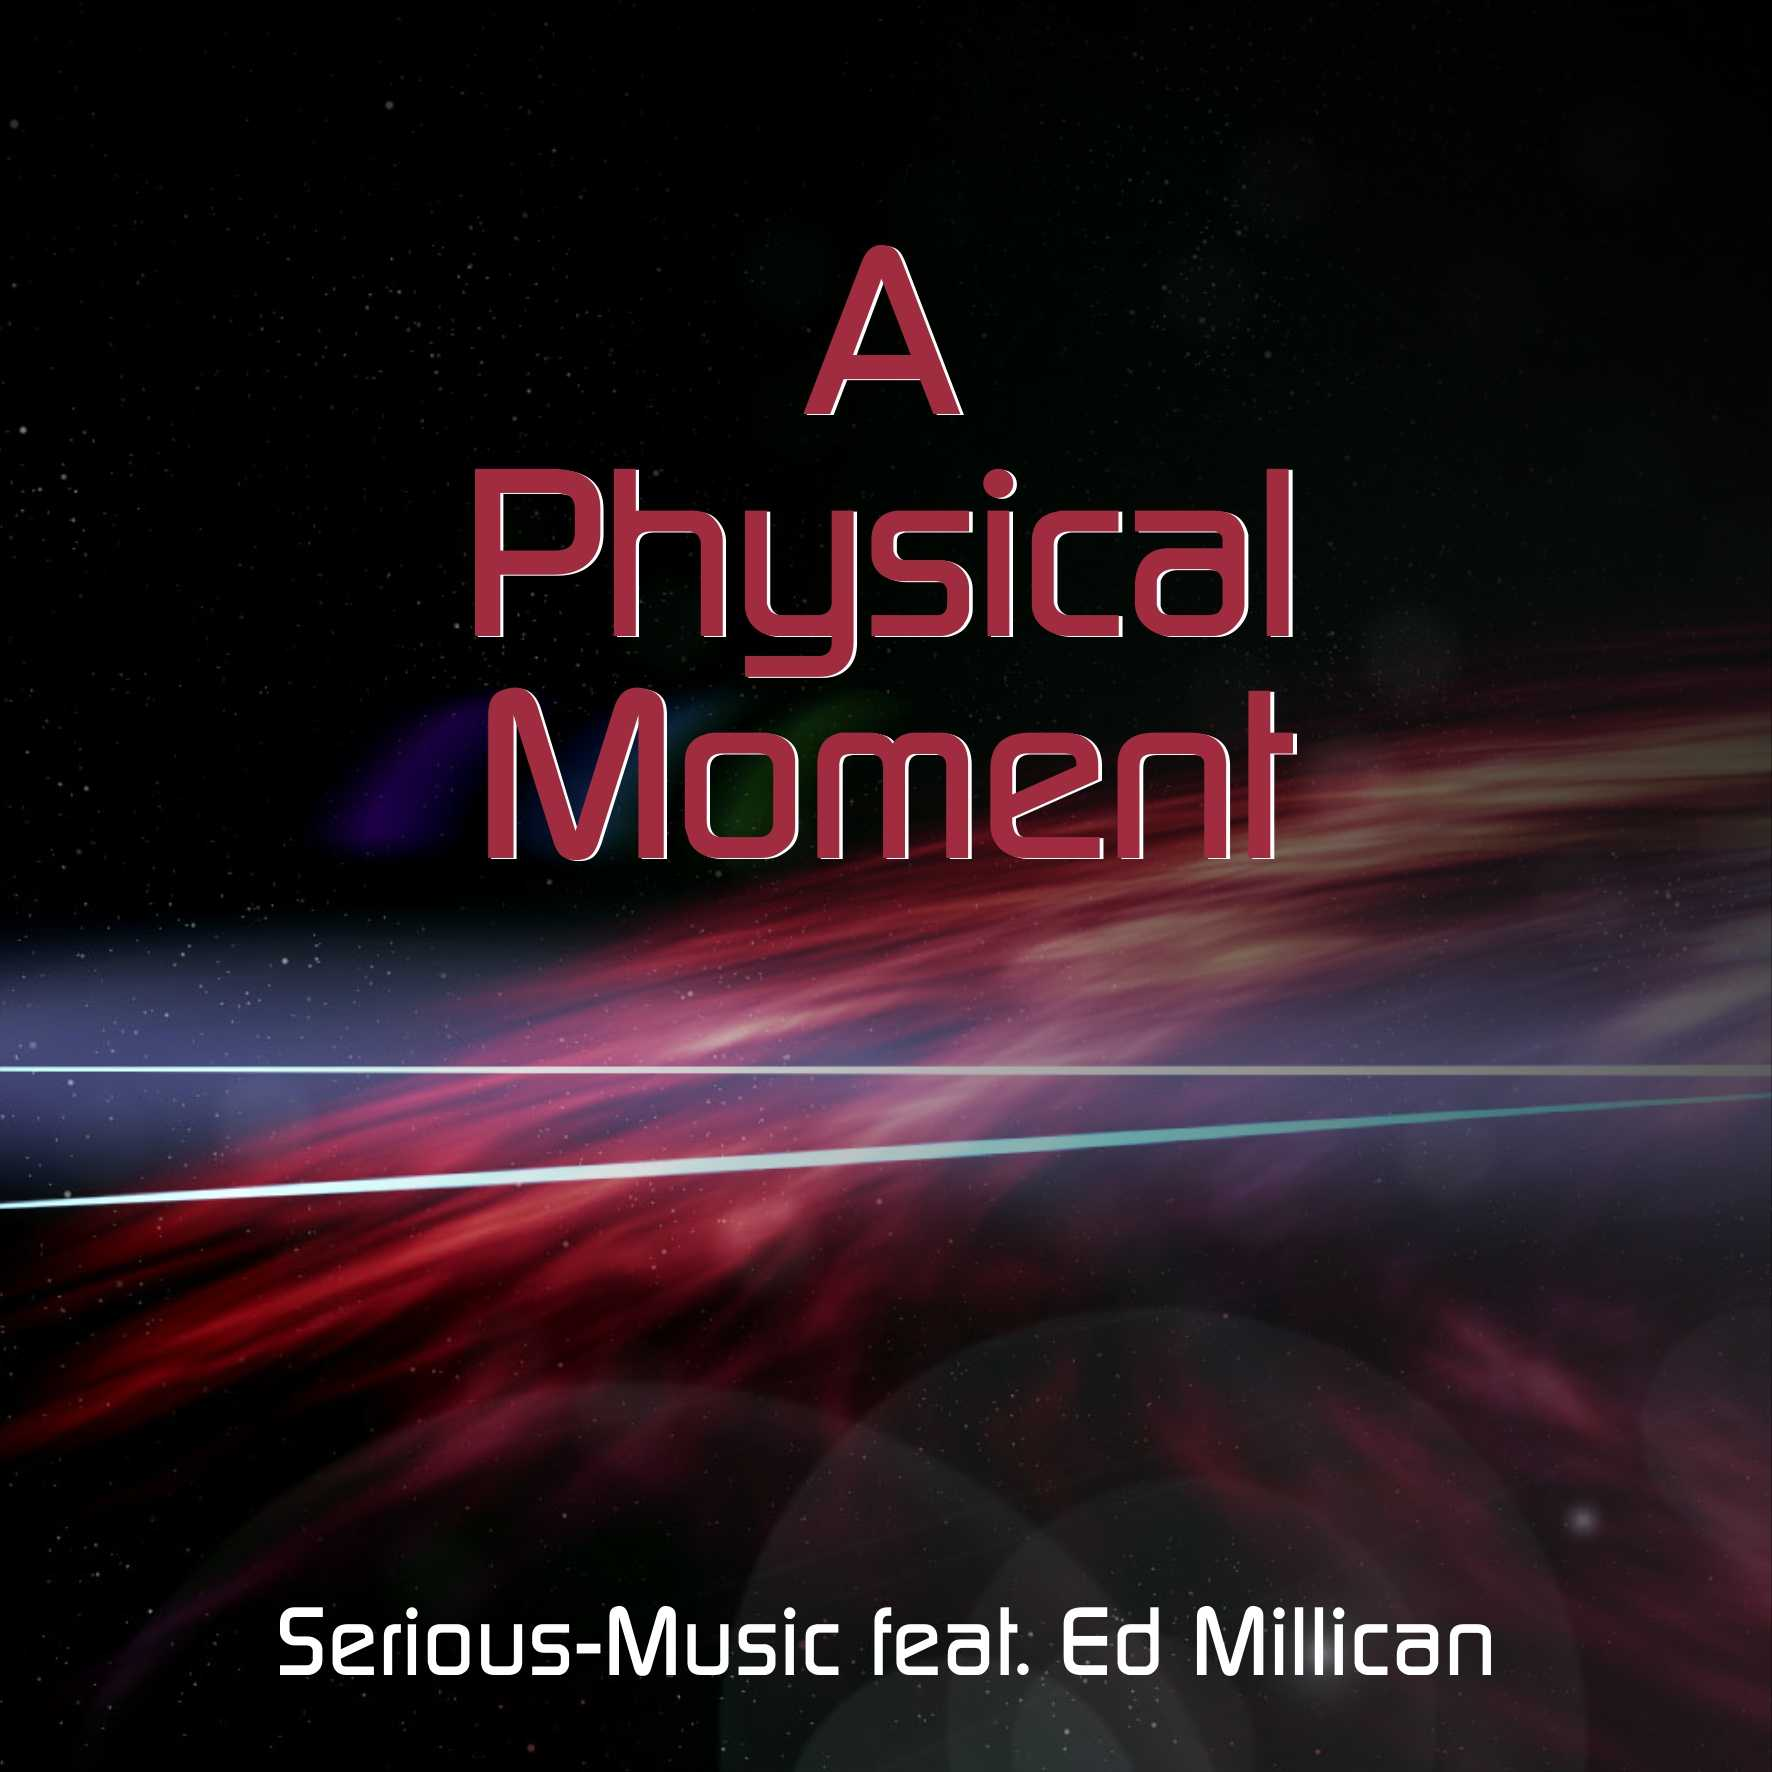 A Physical Moment feat. Ed Millican - Album FALLEN